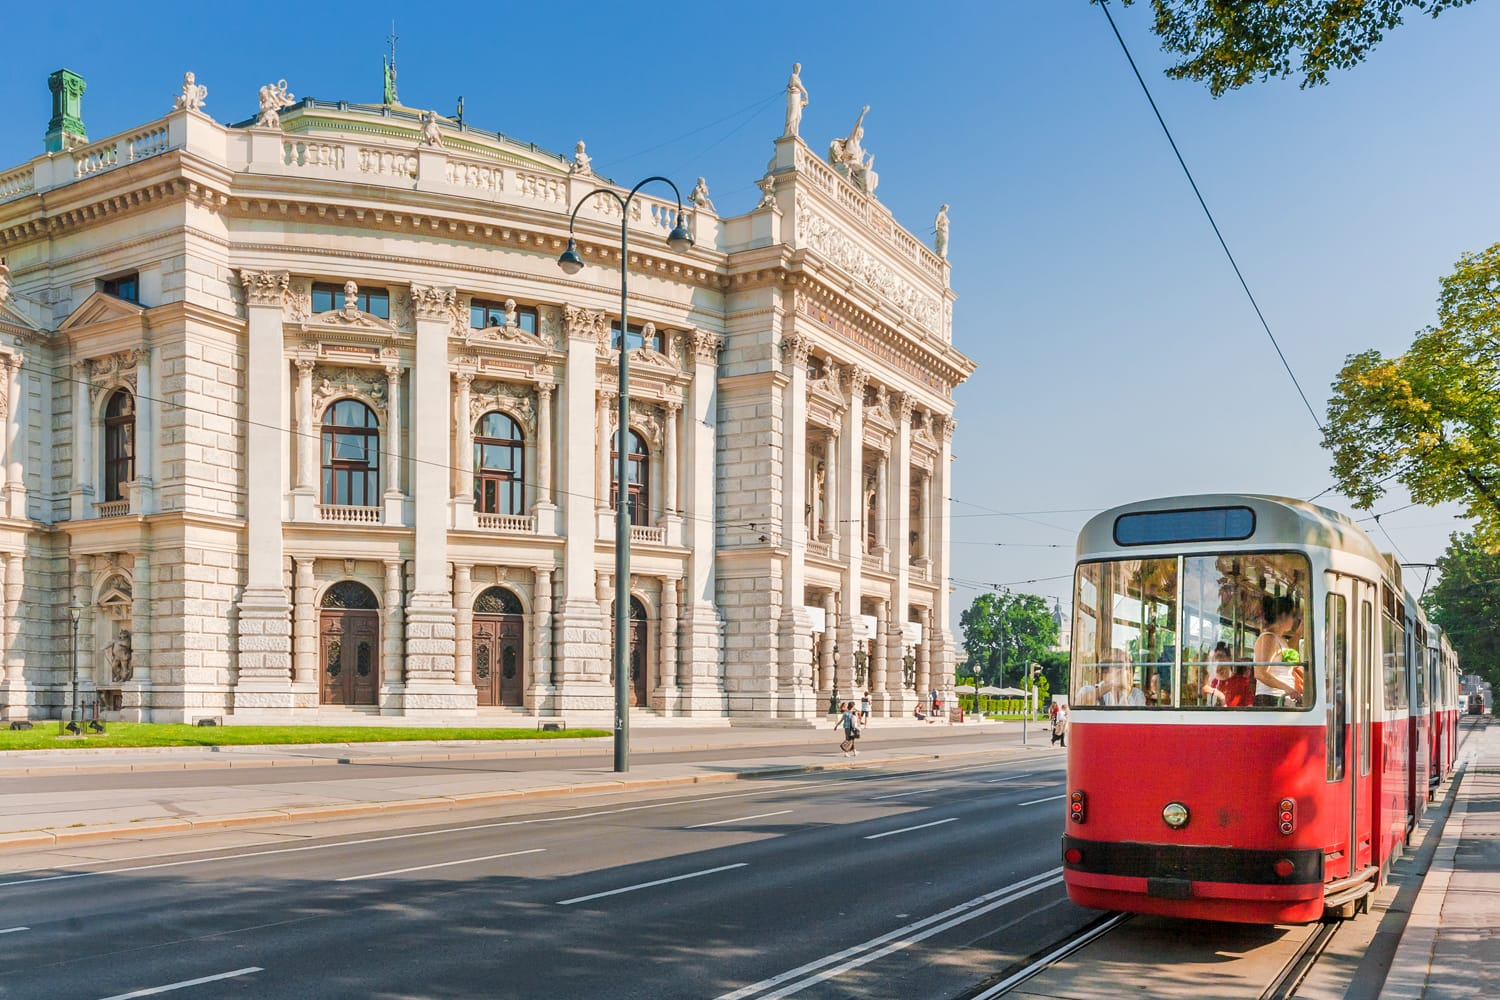 Famous Wiener Ringstrasse with historic Burgtheater (Imperial Court Theatre) and traditional red electric tram at sunset in Vienna, Austria